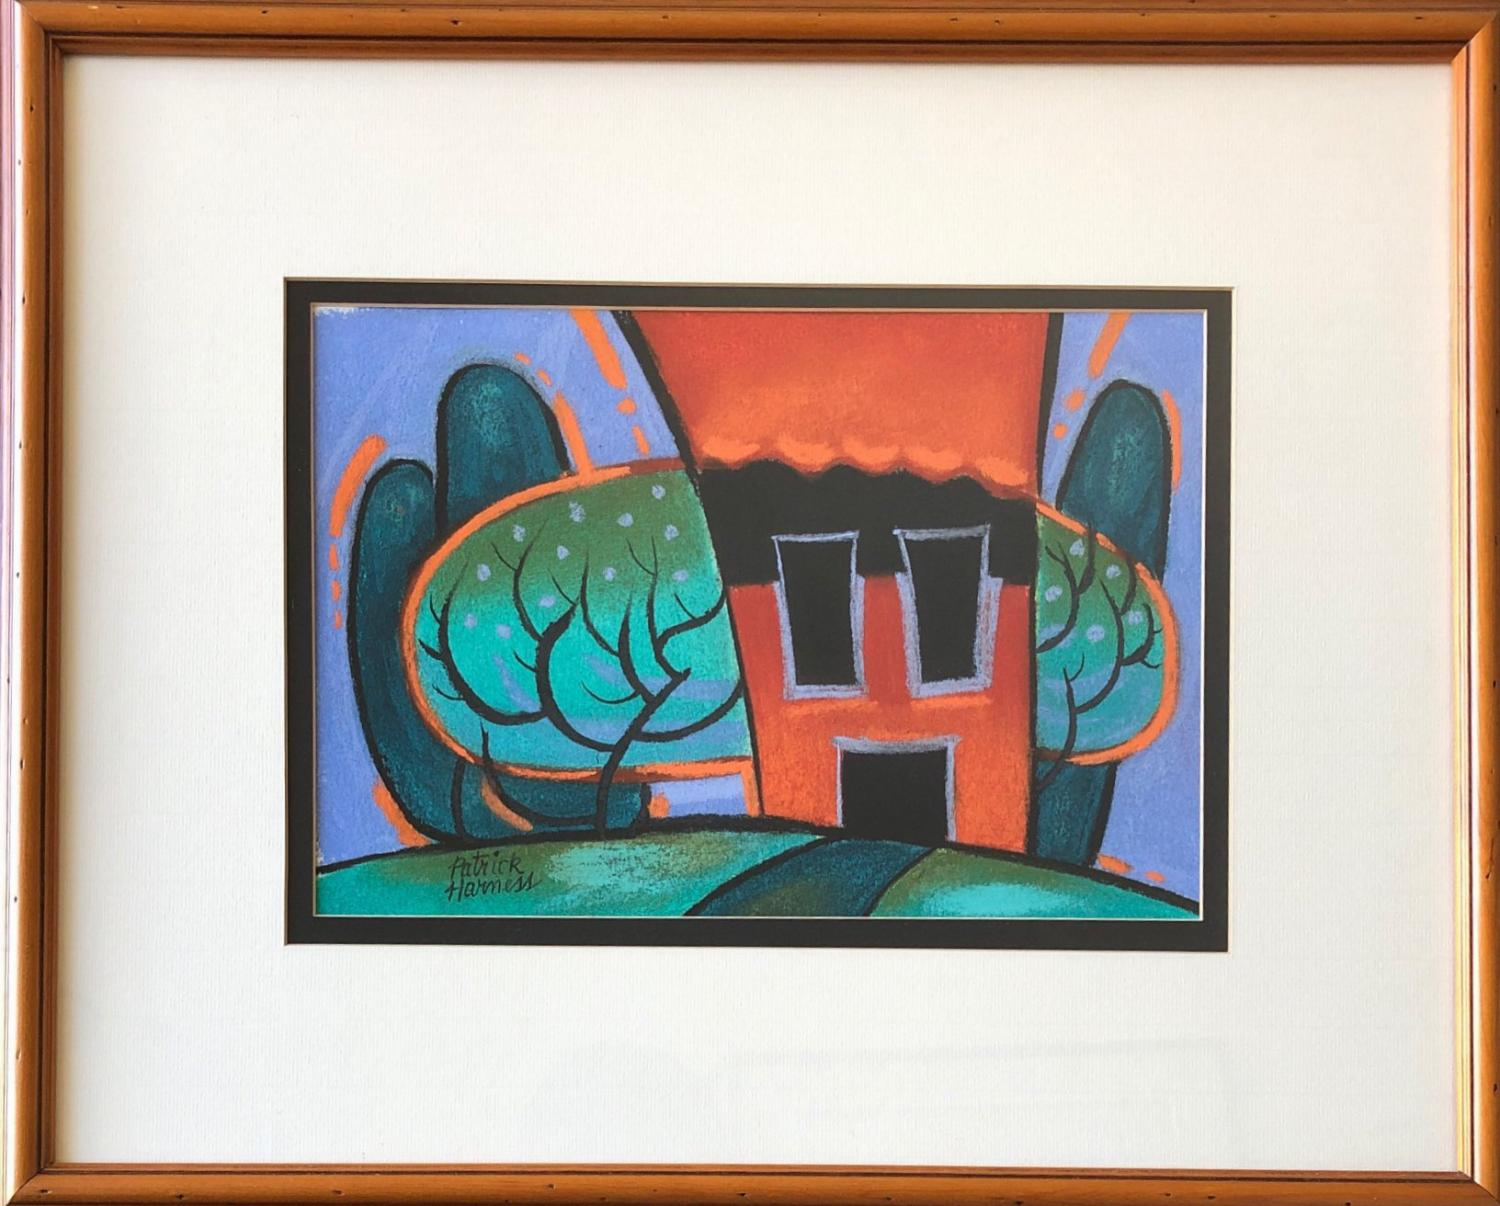 Patrick Harness, Farm O'Lantern. Pastel on rag paper, 19 in. x 23 in. Courtesy of the artist.